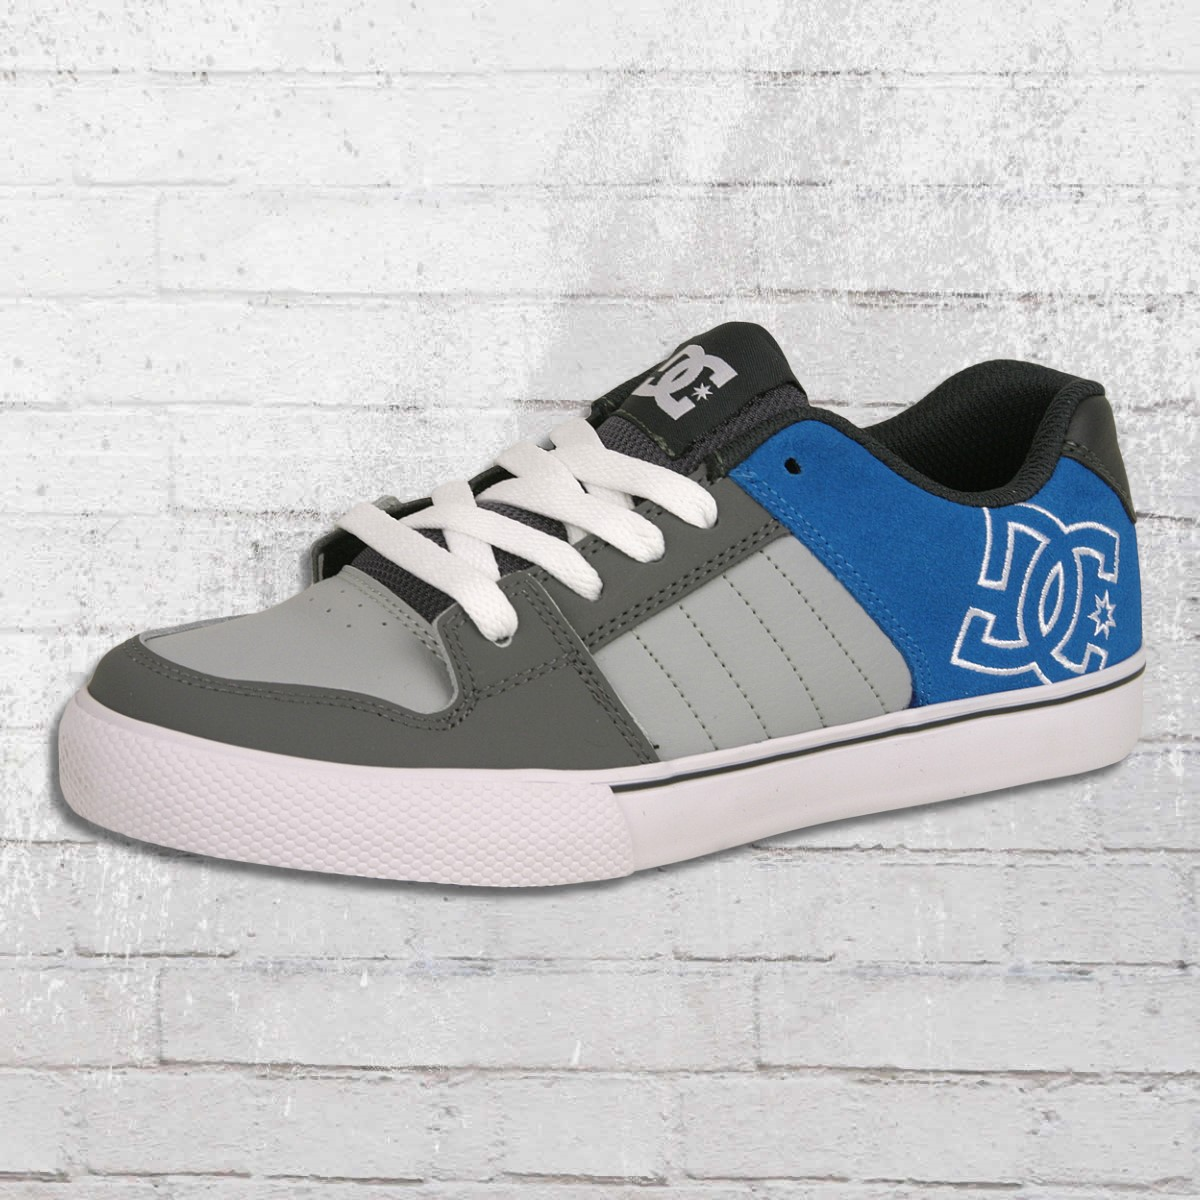 new products dc35b 302eb Jetzt bestellen | DC Shoes Kinder Schuhe Chase grau blau ...